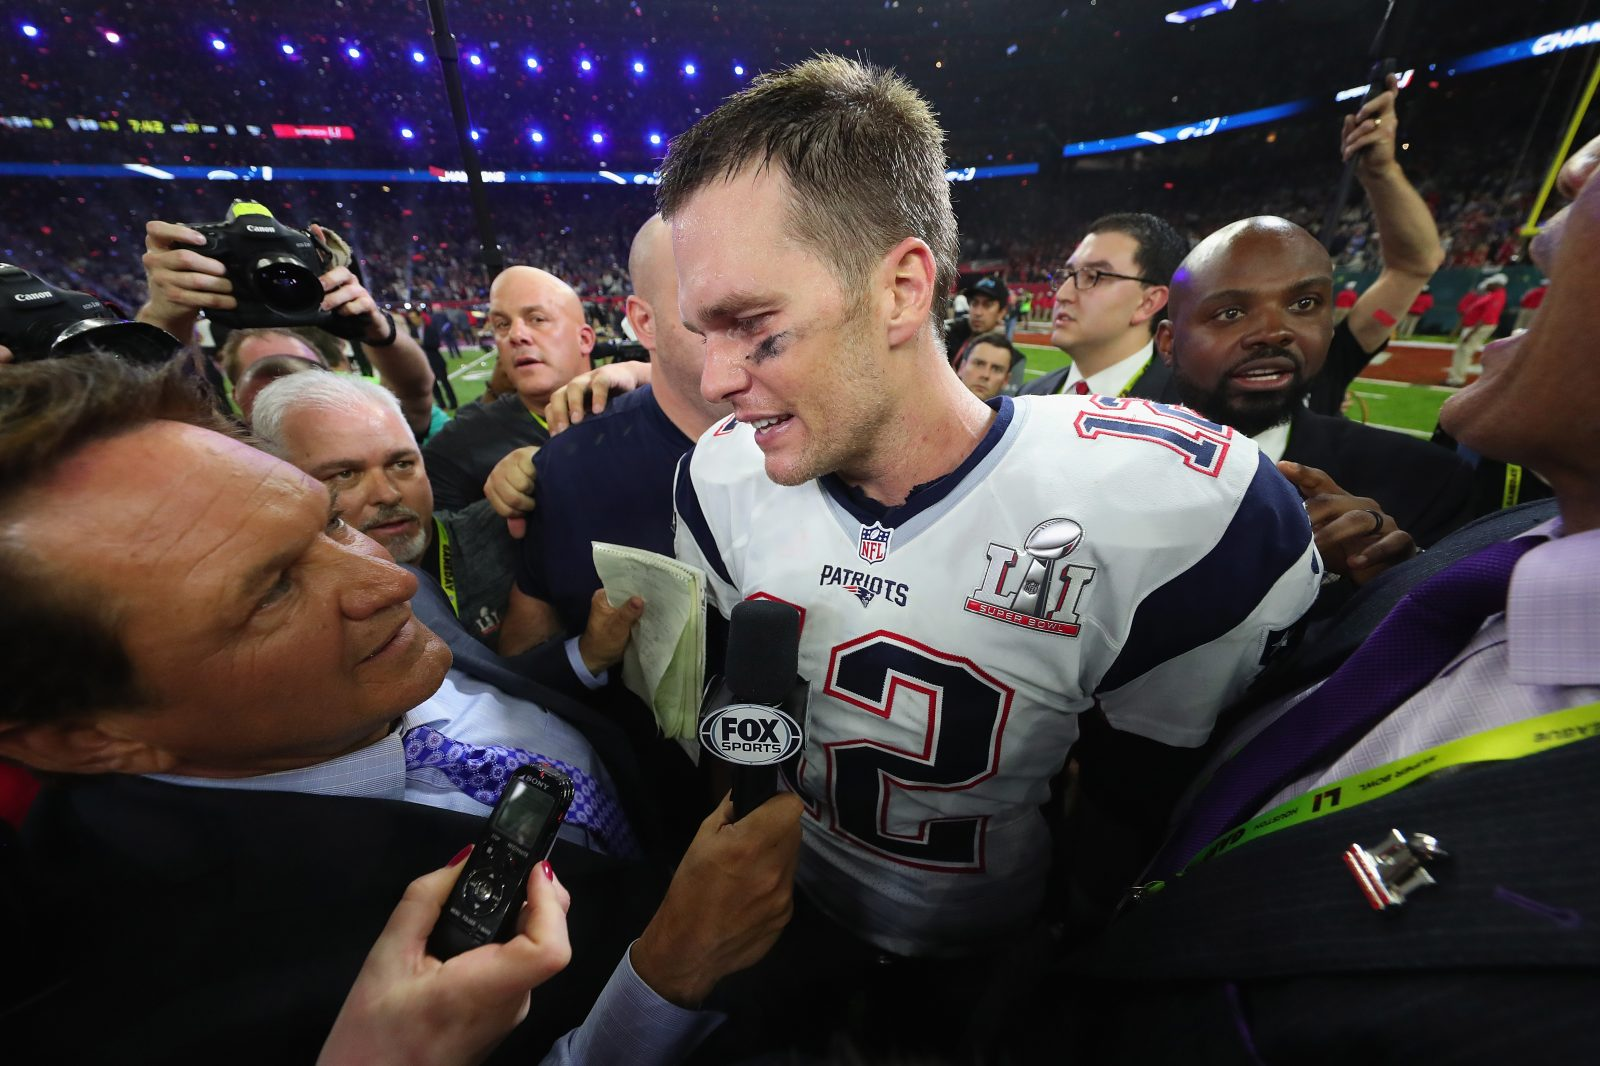 Tom Brady of the New England Patriots is interviewed by Fox Sports' Chris Myers following Super Bowl LI. (Getty Images)